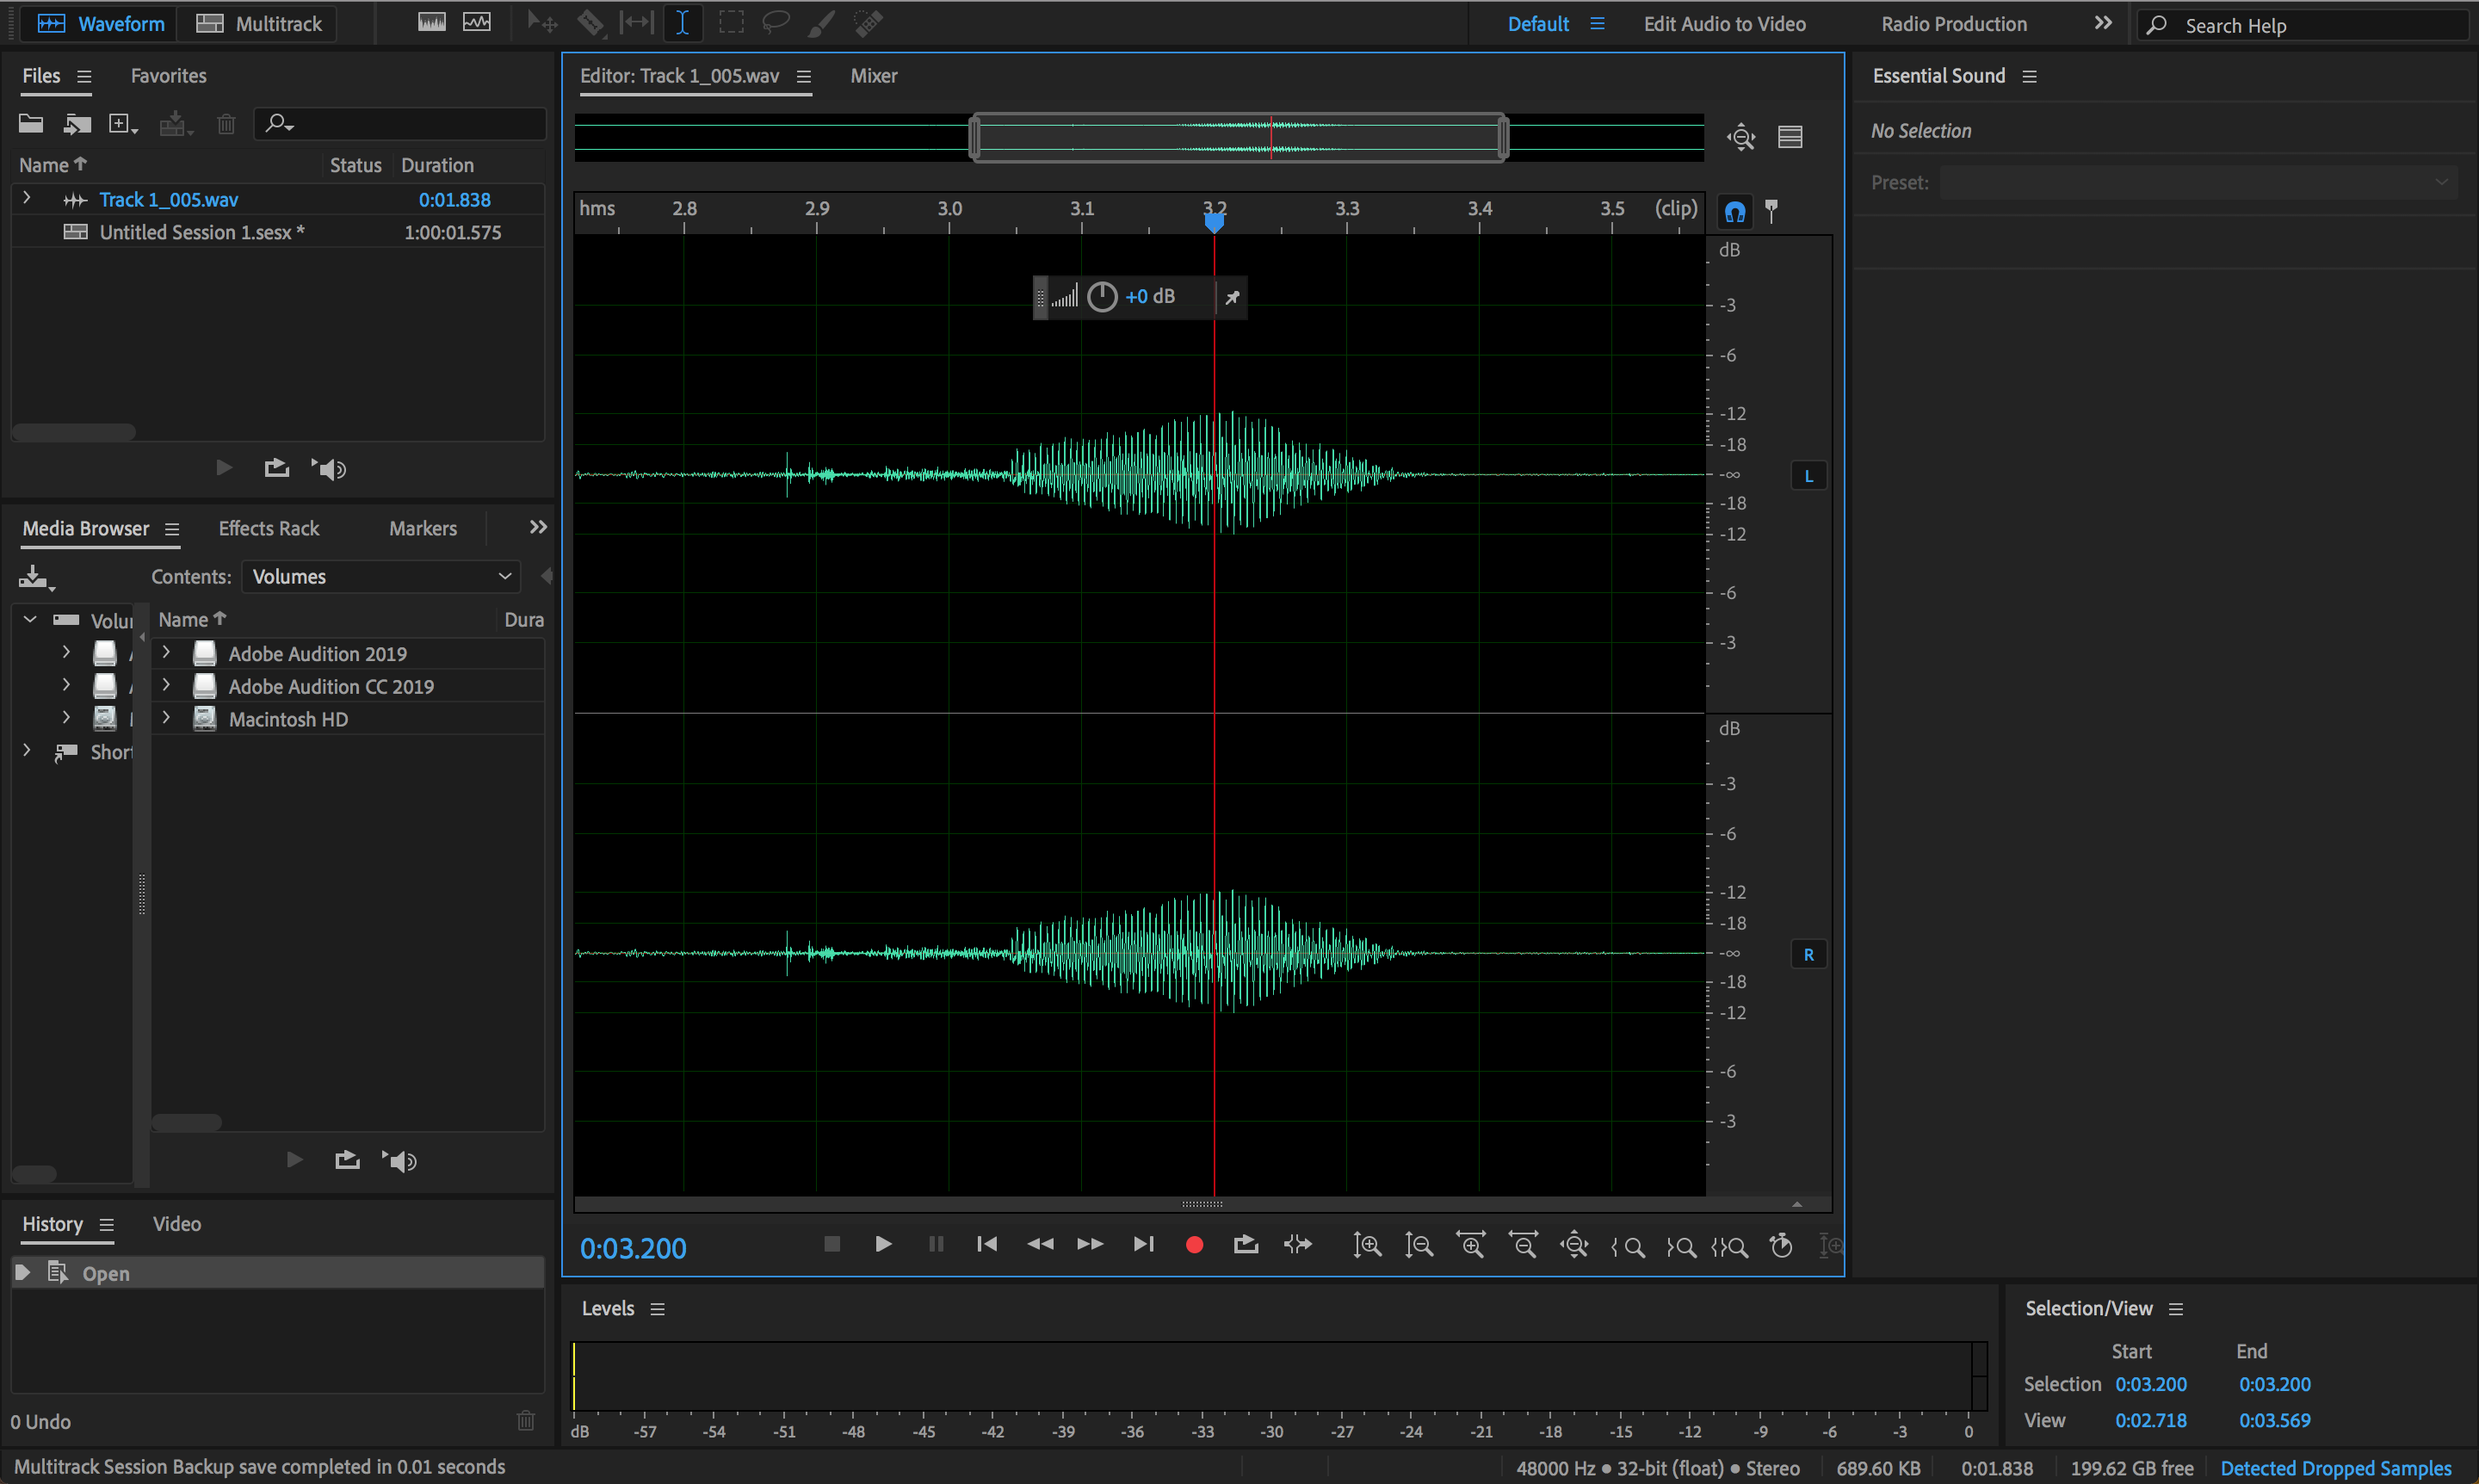 Basic Waveform view